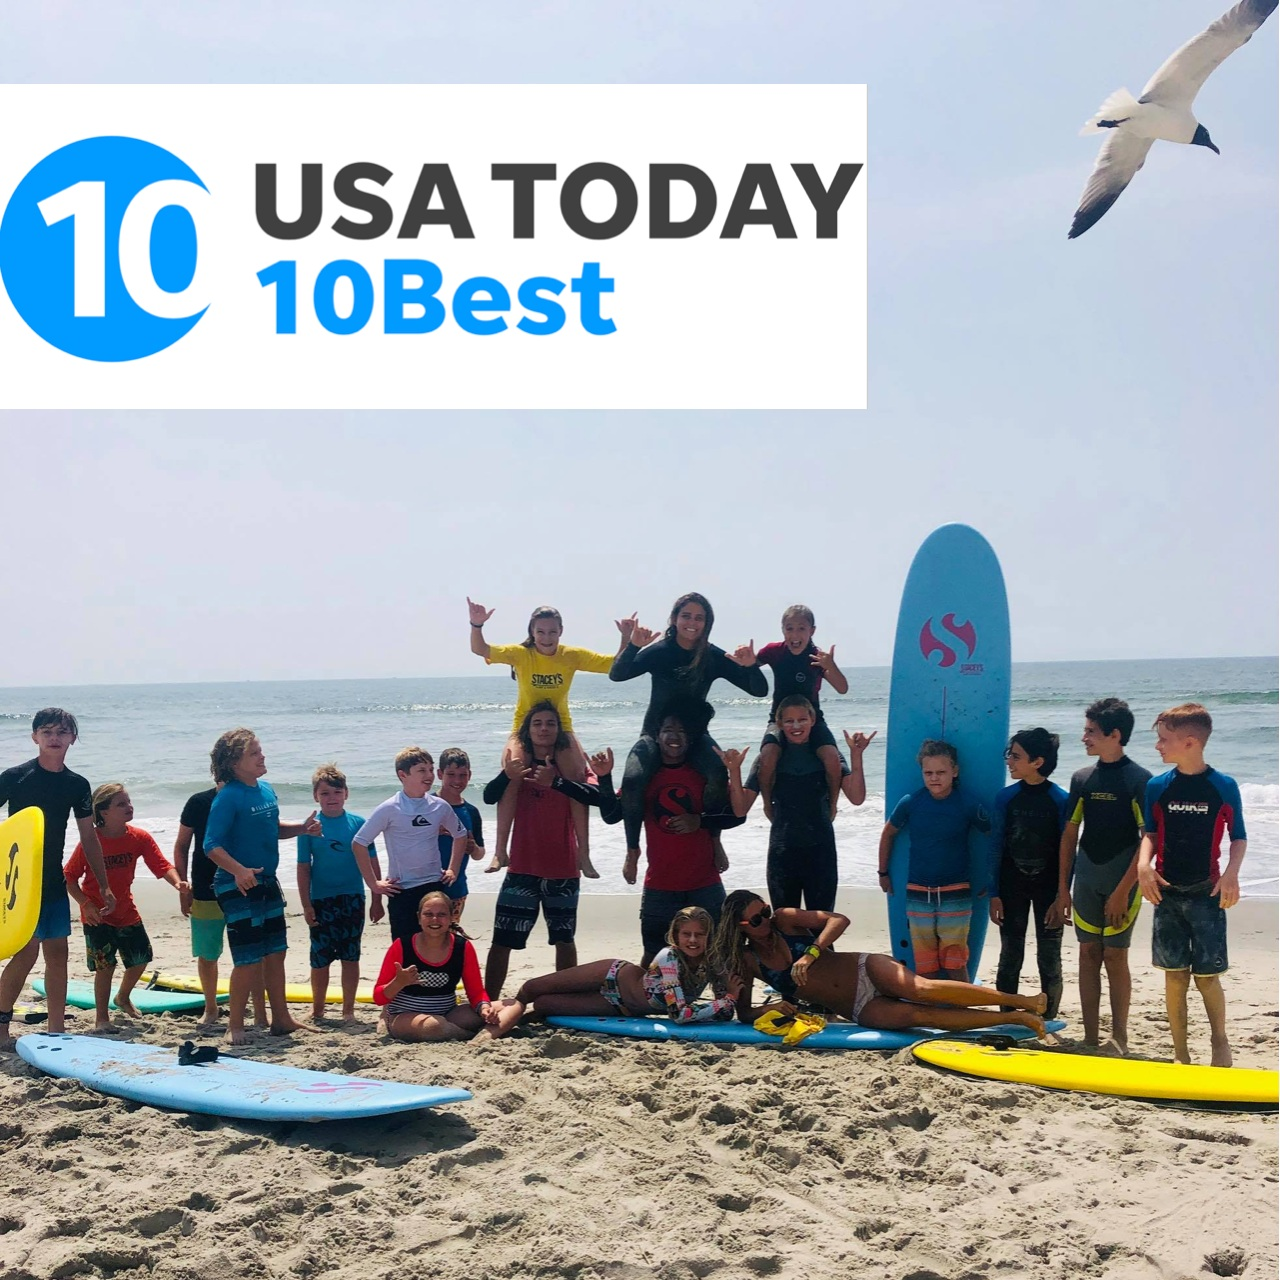 VOTED USA TODAY 10BEST! -